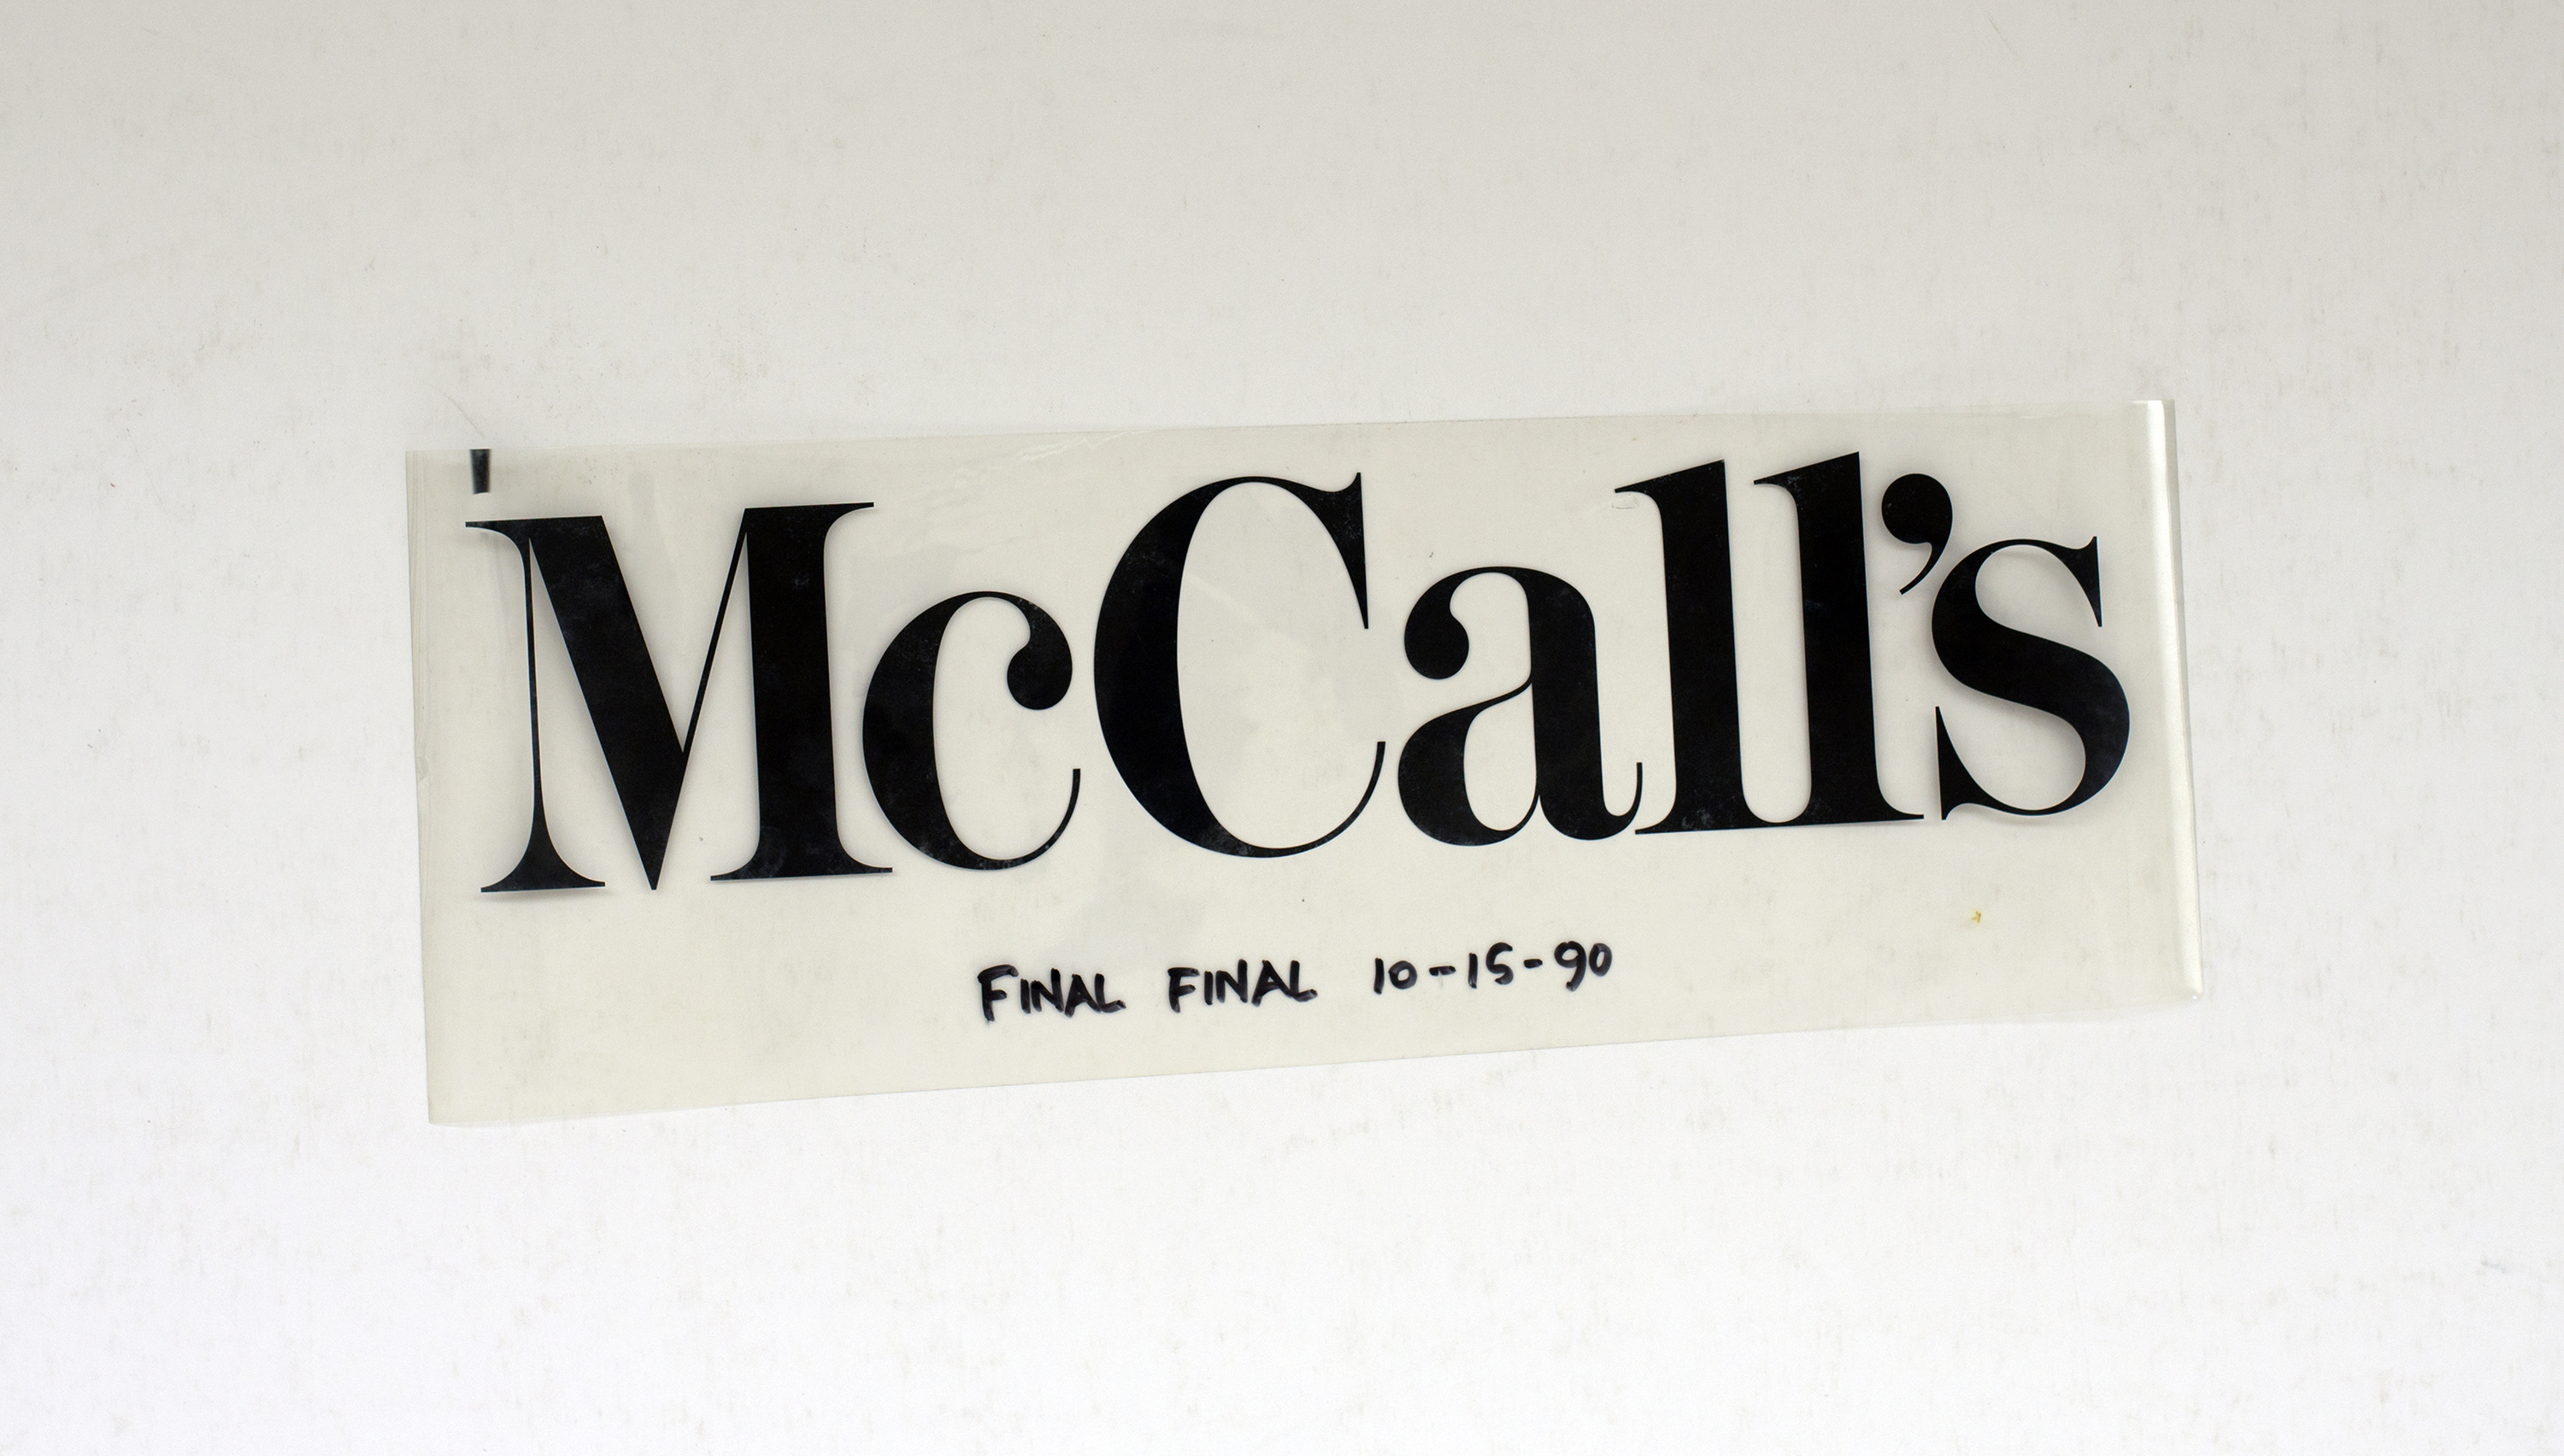 Text: McCall's, final final 10-15-90. Black against white background